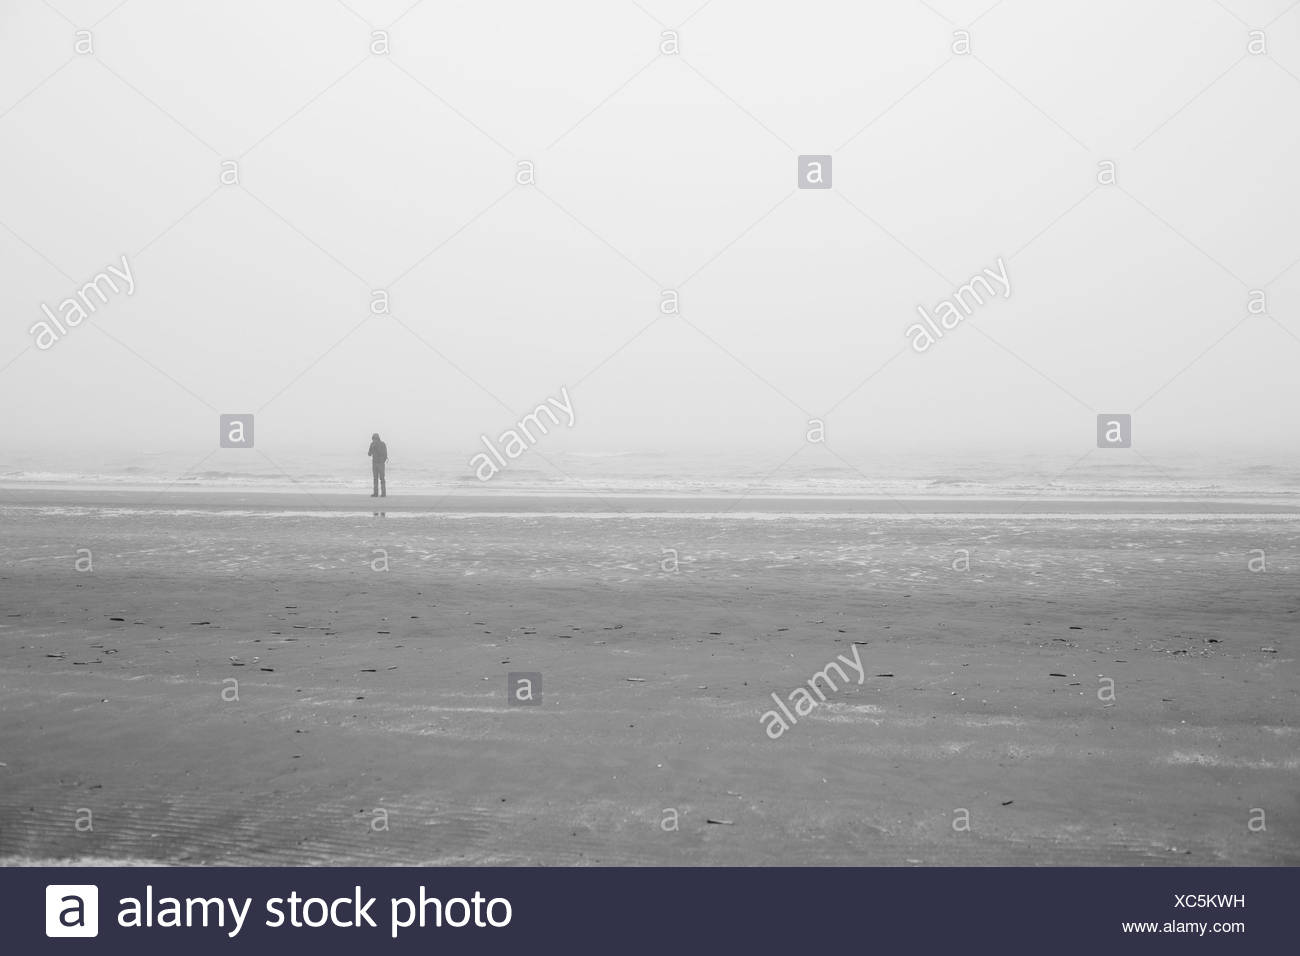 1 single person alone on the beach of the North Sea, - Stock Image